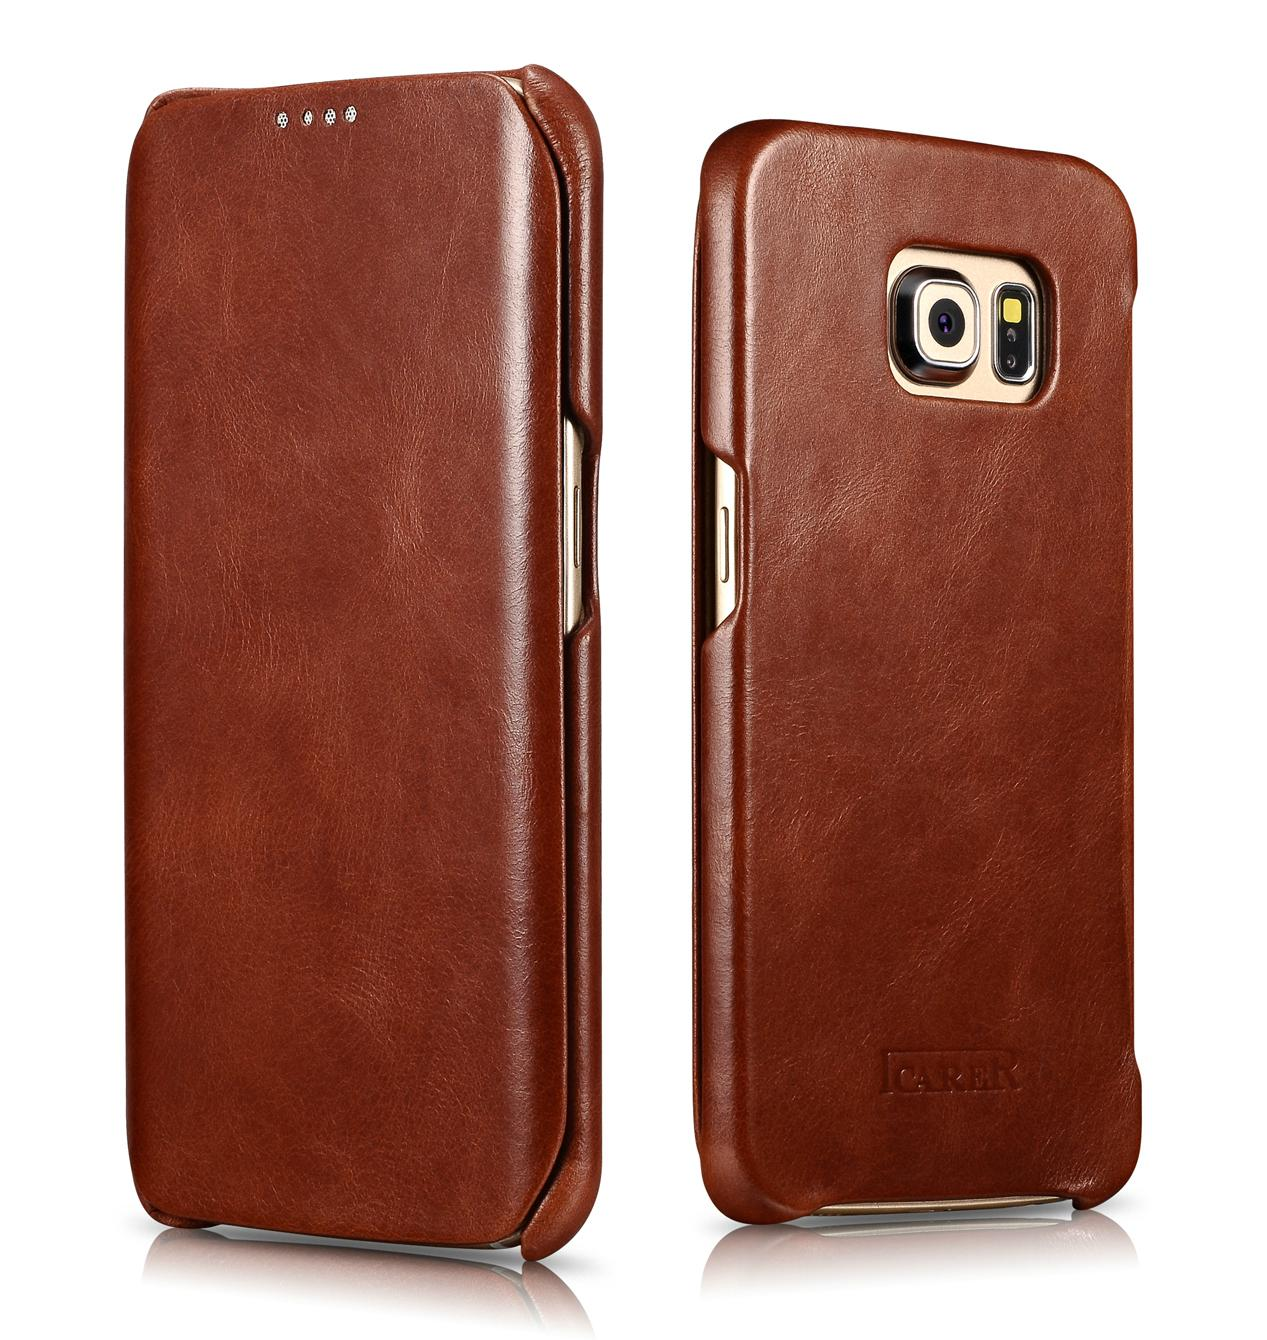 iCarer Samsung Galaxy S6 Edge Side Open Vintage Series Genuine Leather Case 1